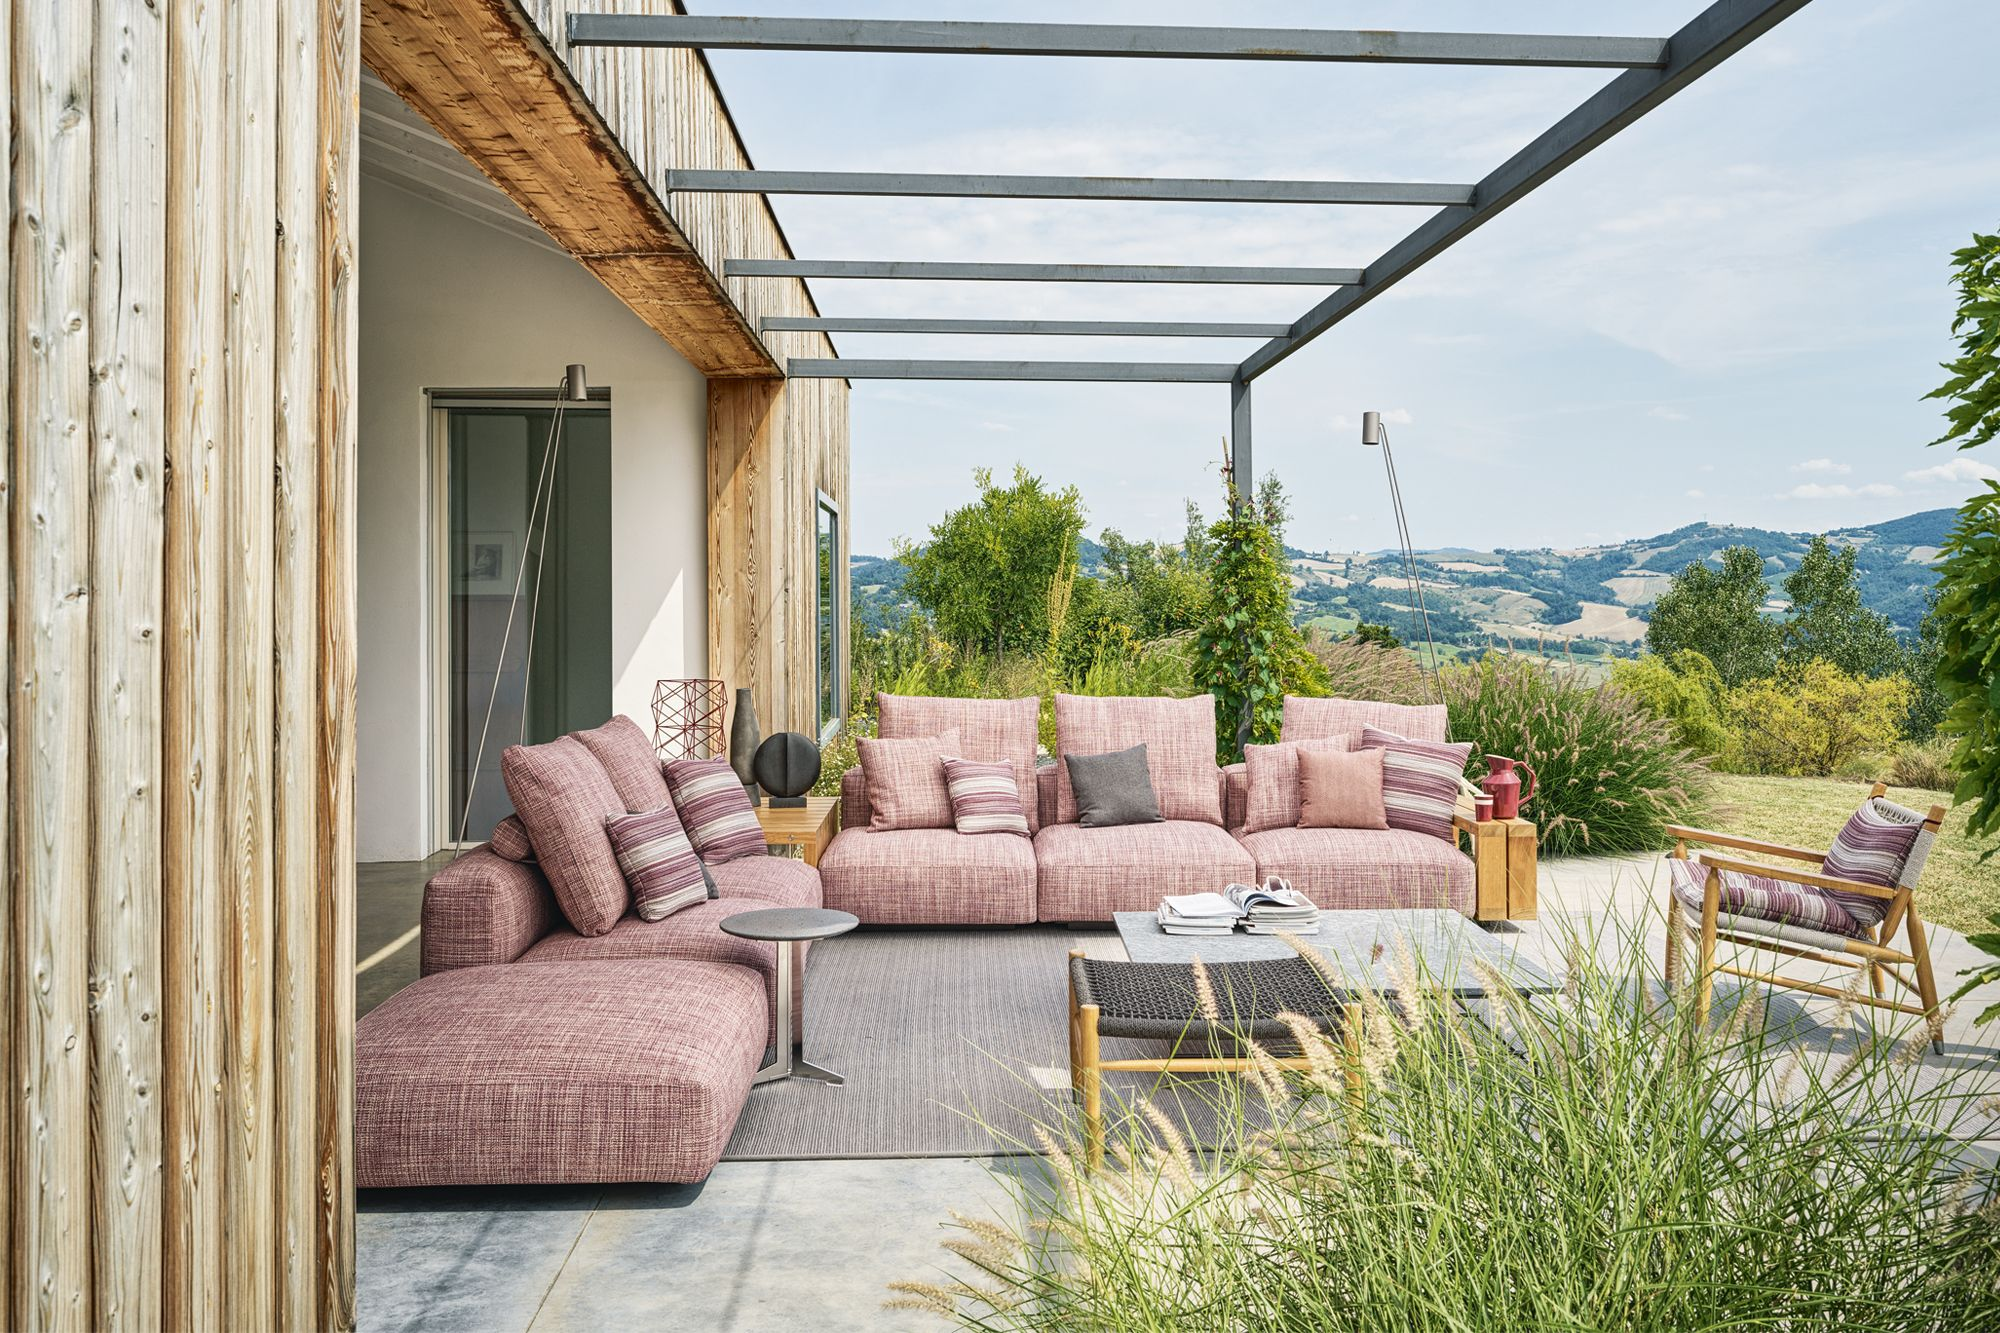 The Flexform Tessa armchair on the terrace is Donini's favourite reading spot